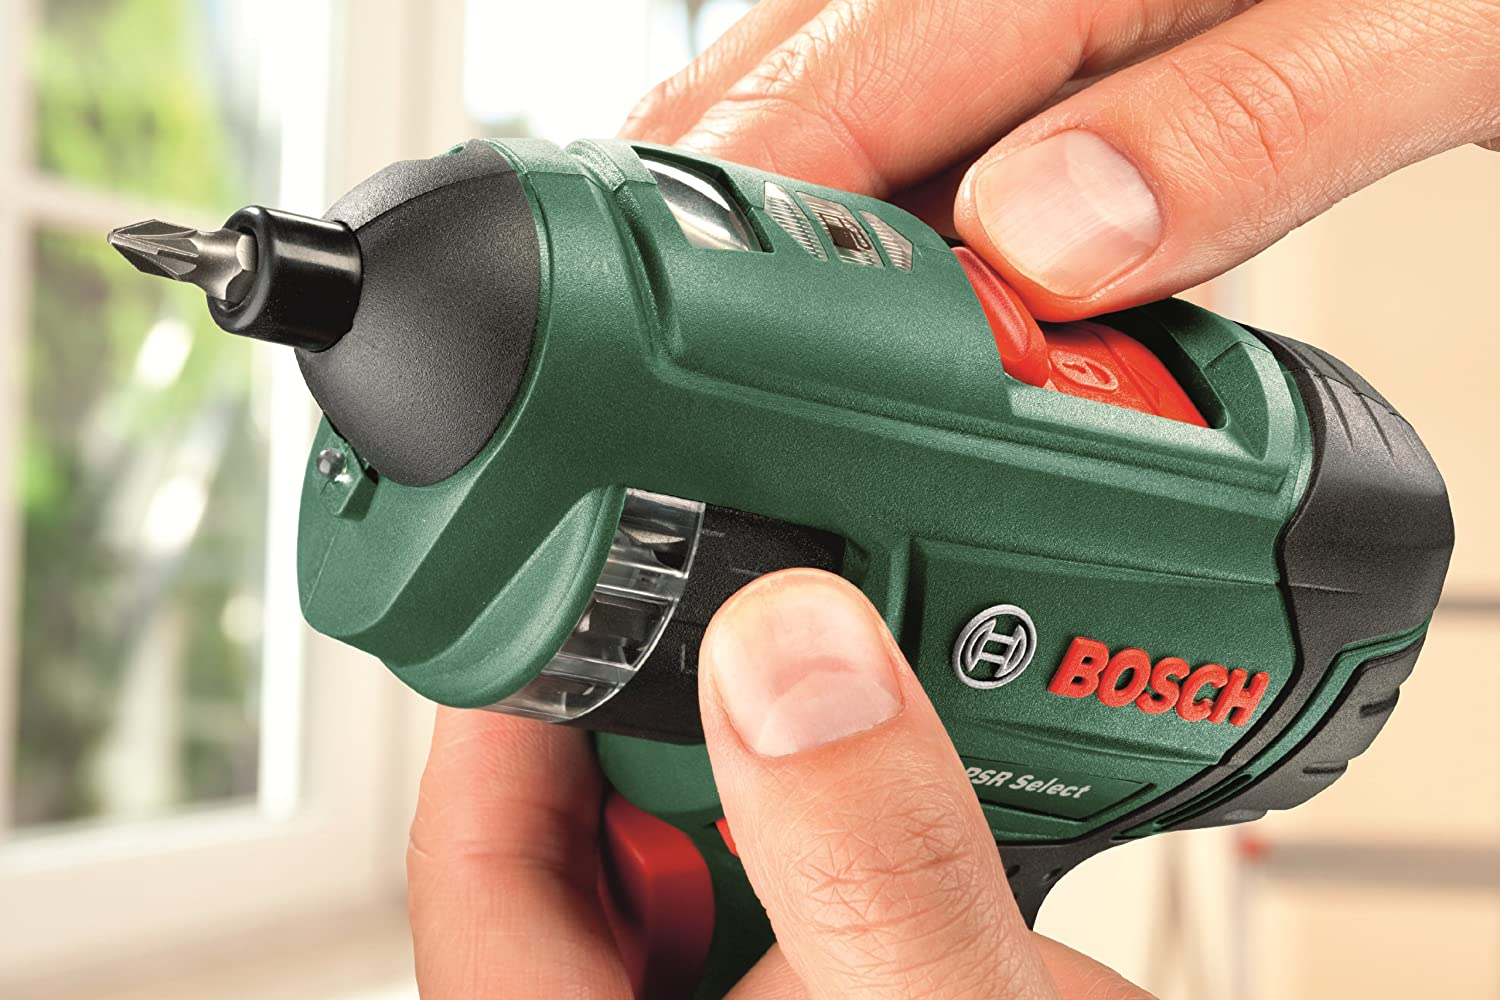 Bosch_0603977070_PSR Select Cordless Screwdriver 1 - PSR SELECT